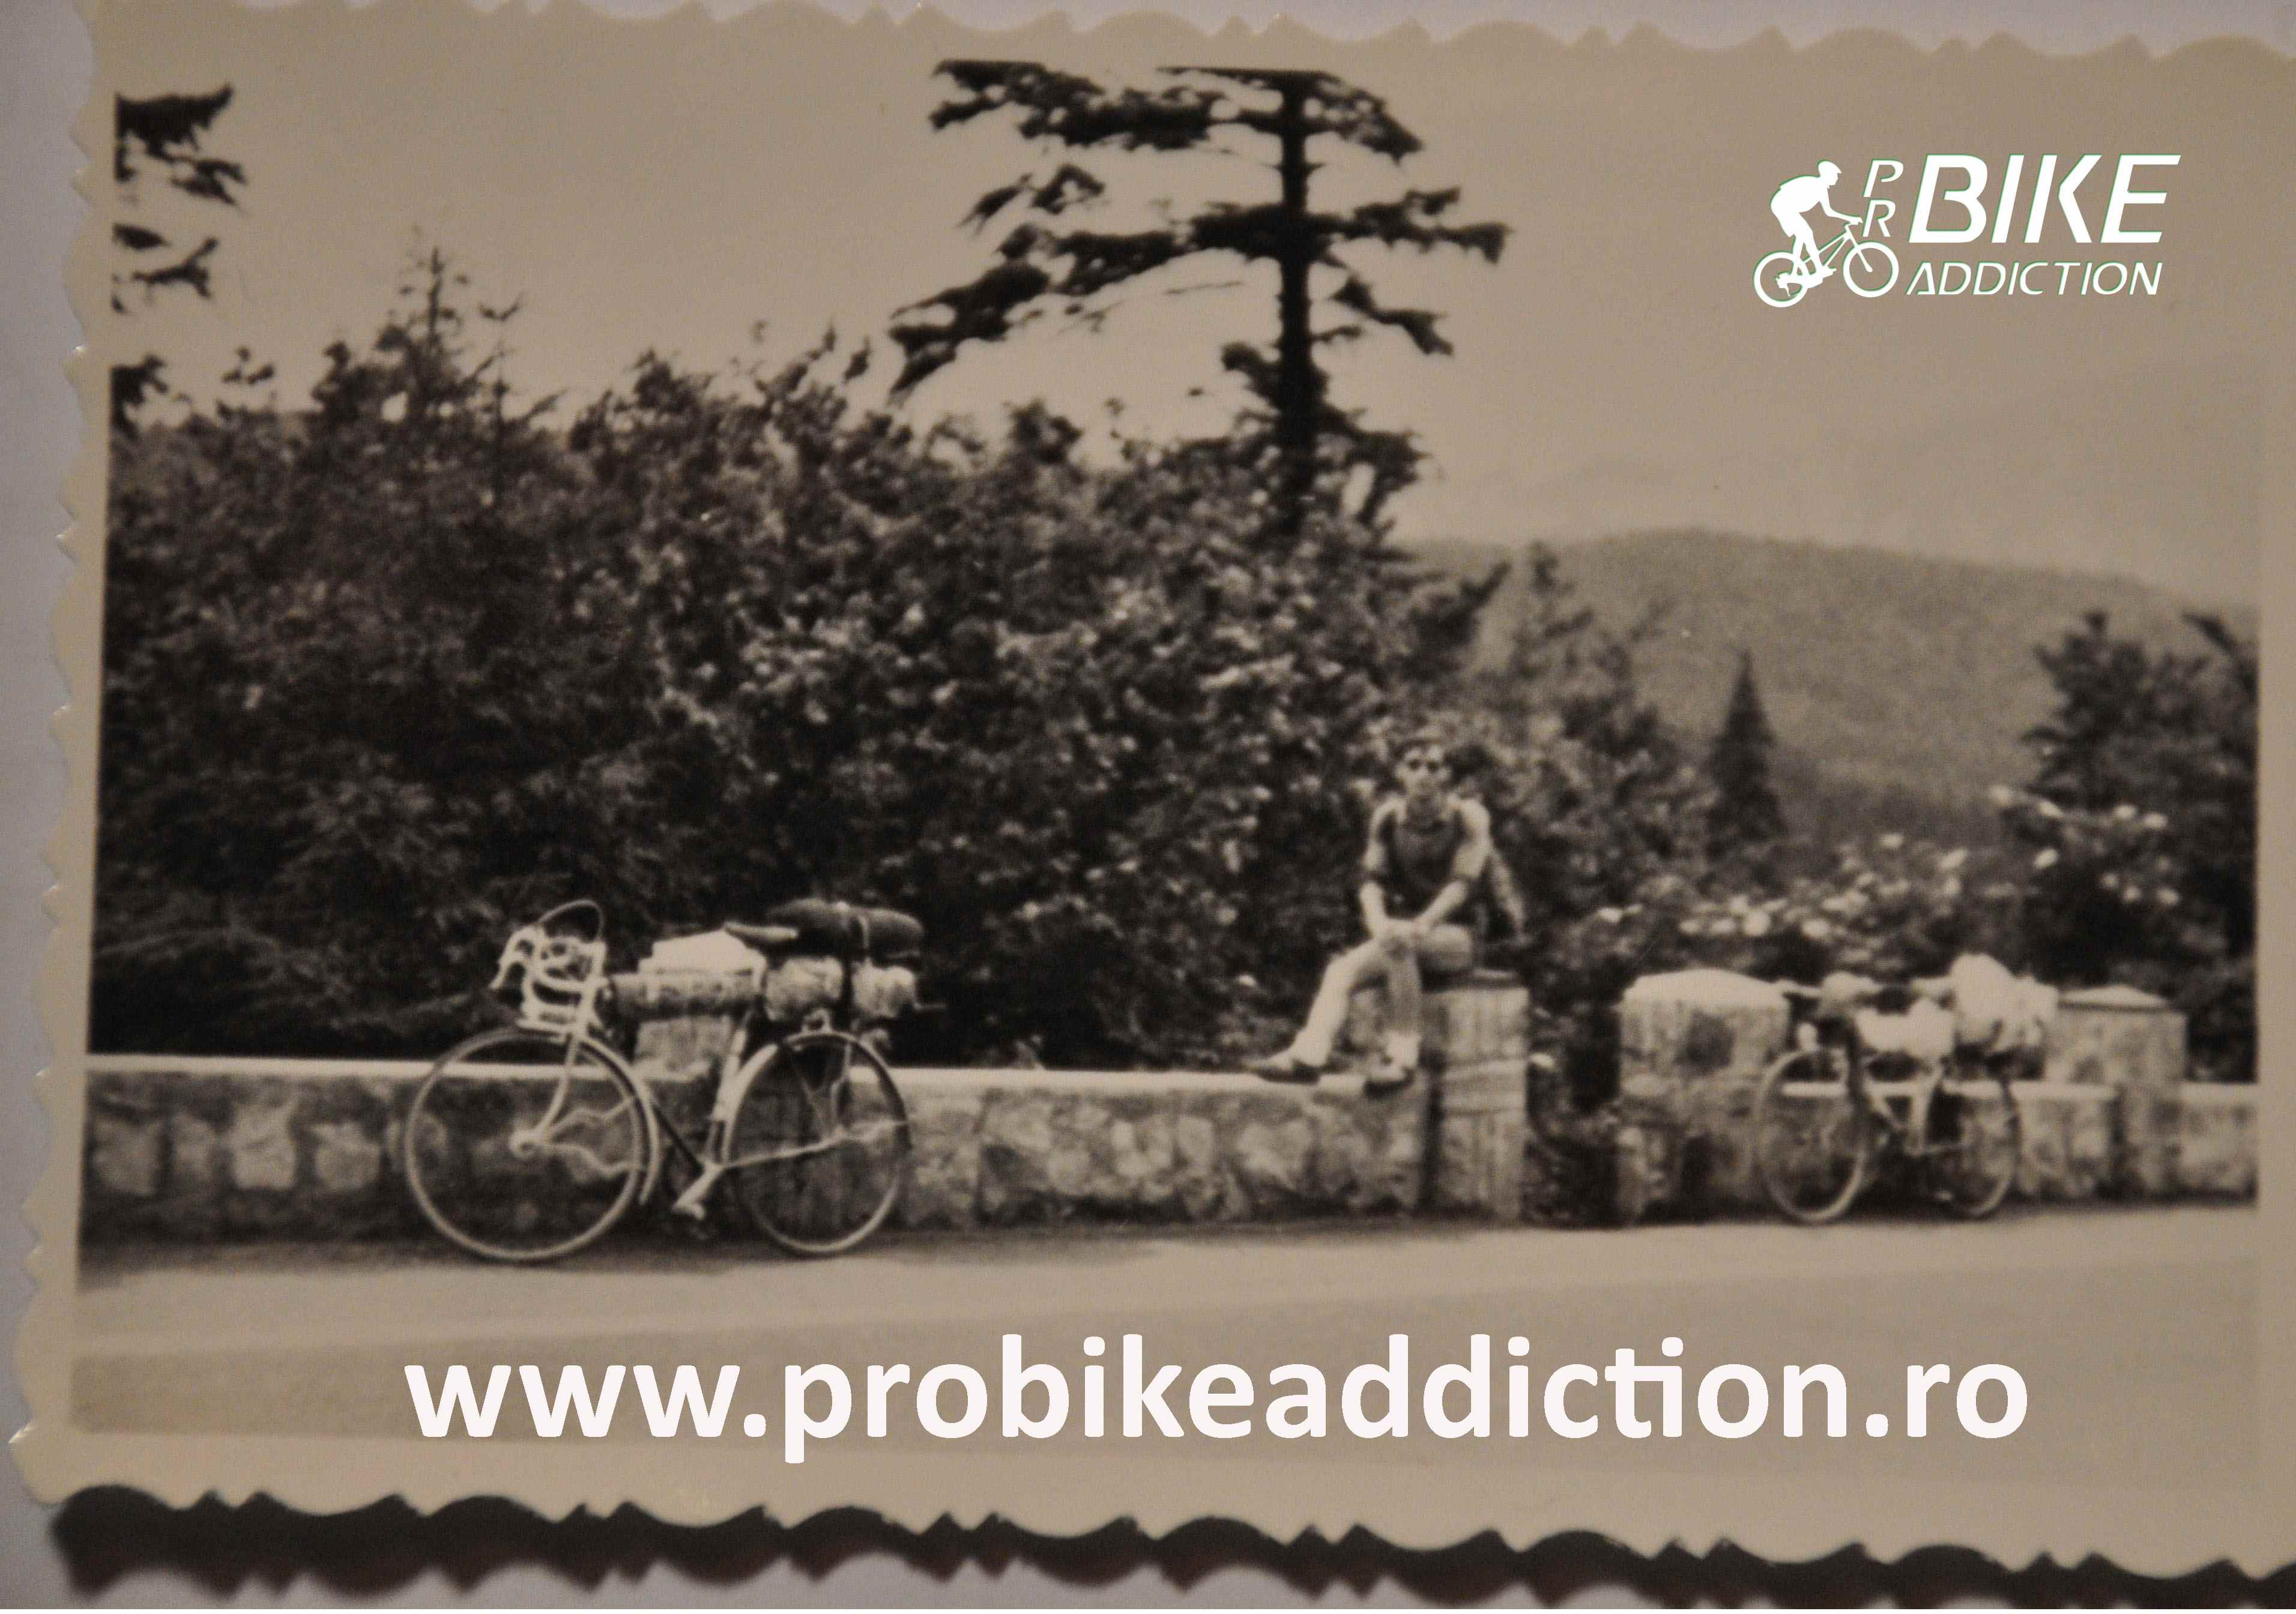 probikeaddiction cicloturism bucegi anii 70 fotografii document